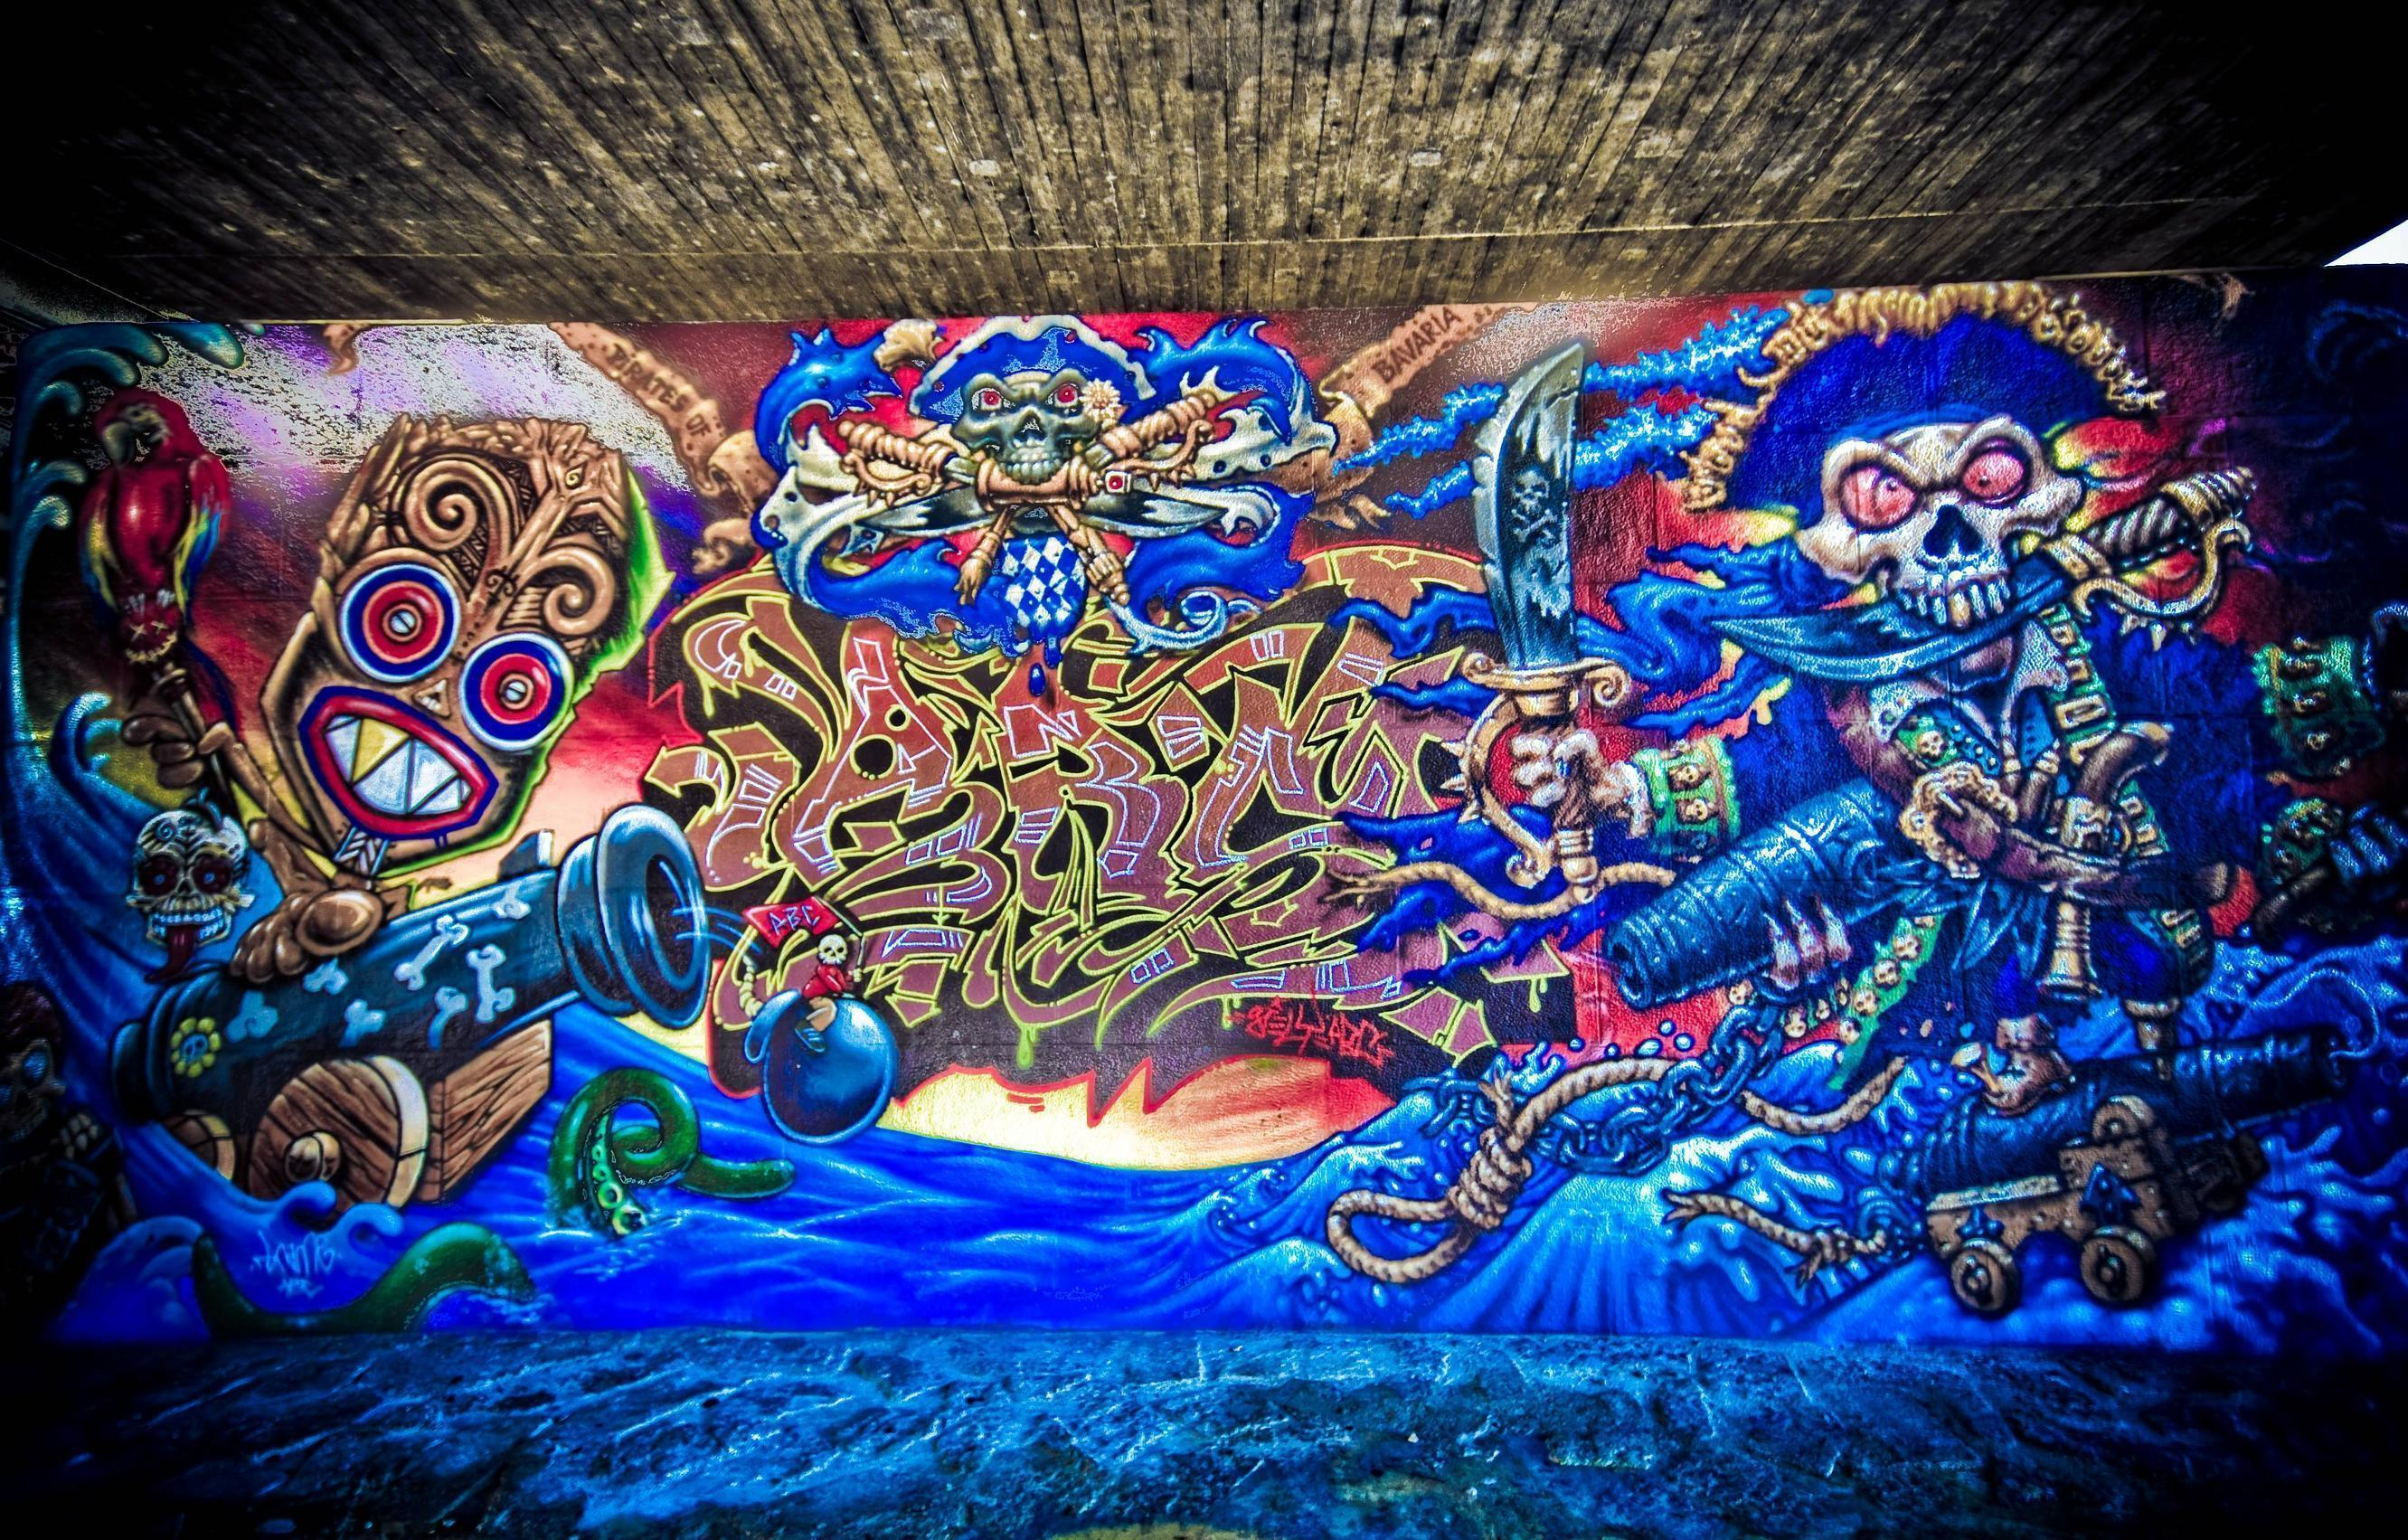 Wall Art Hd Pic : Hd graffiti wallpapers wallpaper cave